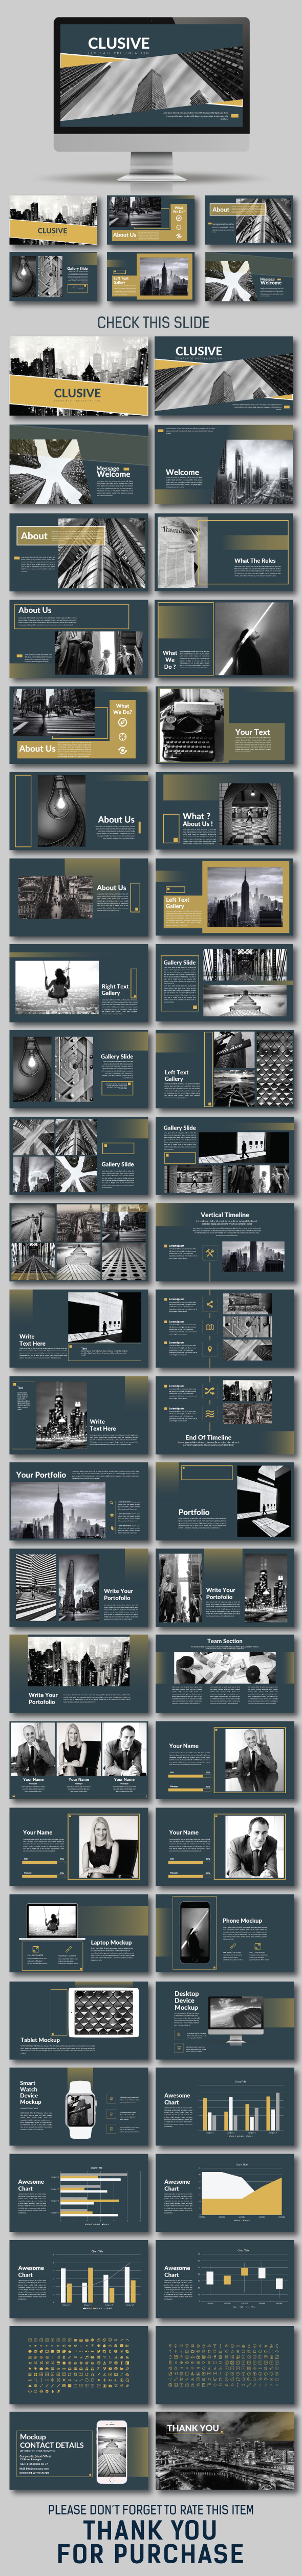 Clusive Presentation Template - Business PowerPoint Templates